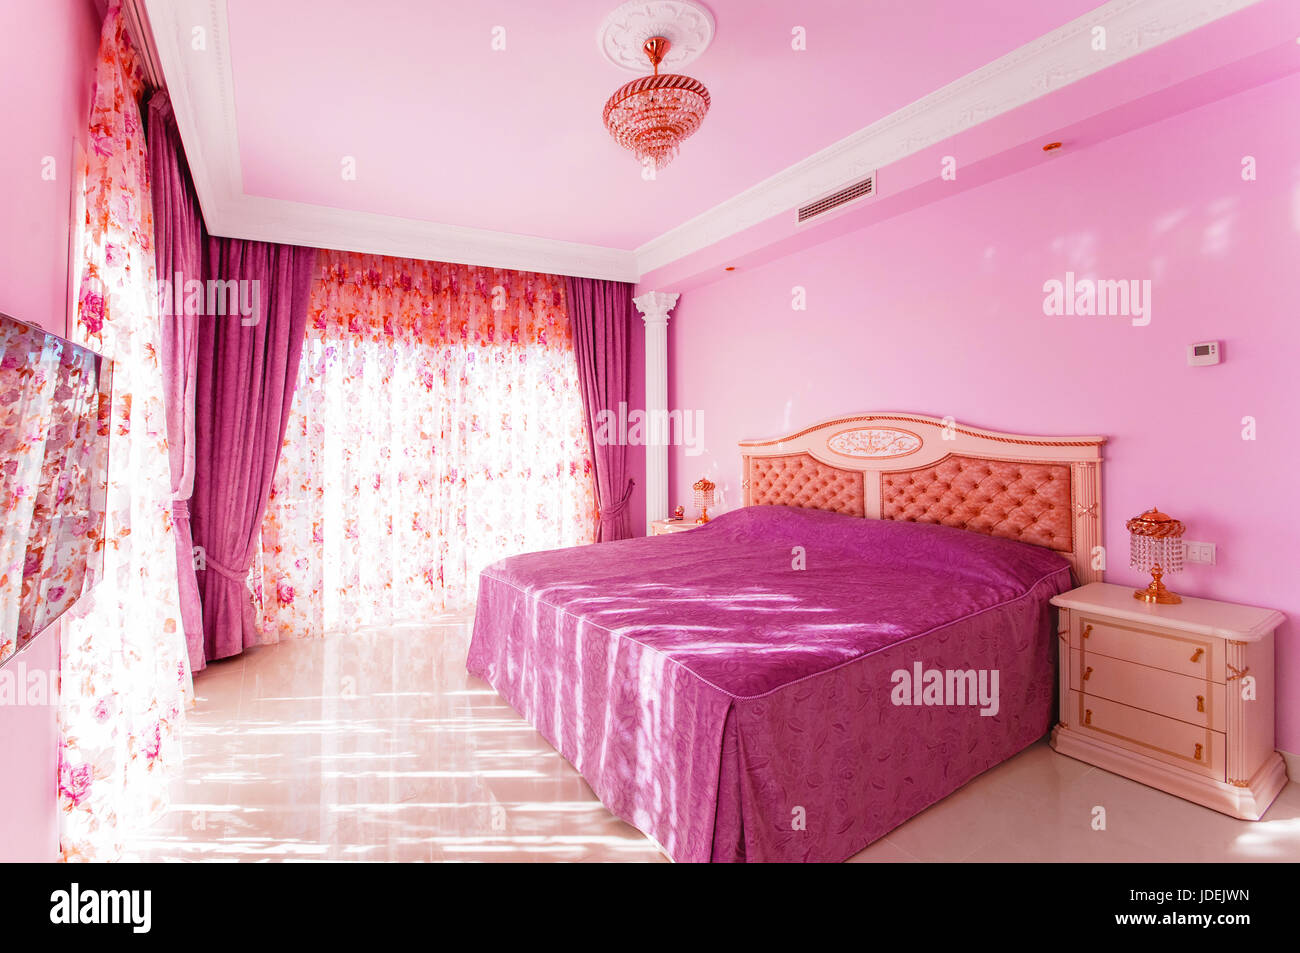 Luxurious bedroom with a bright pink color, with large ...